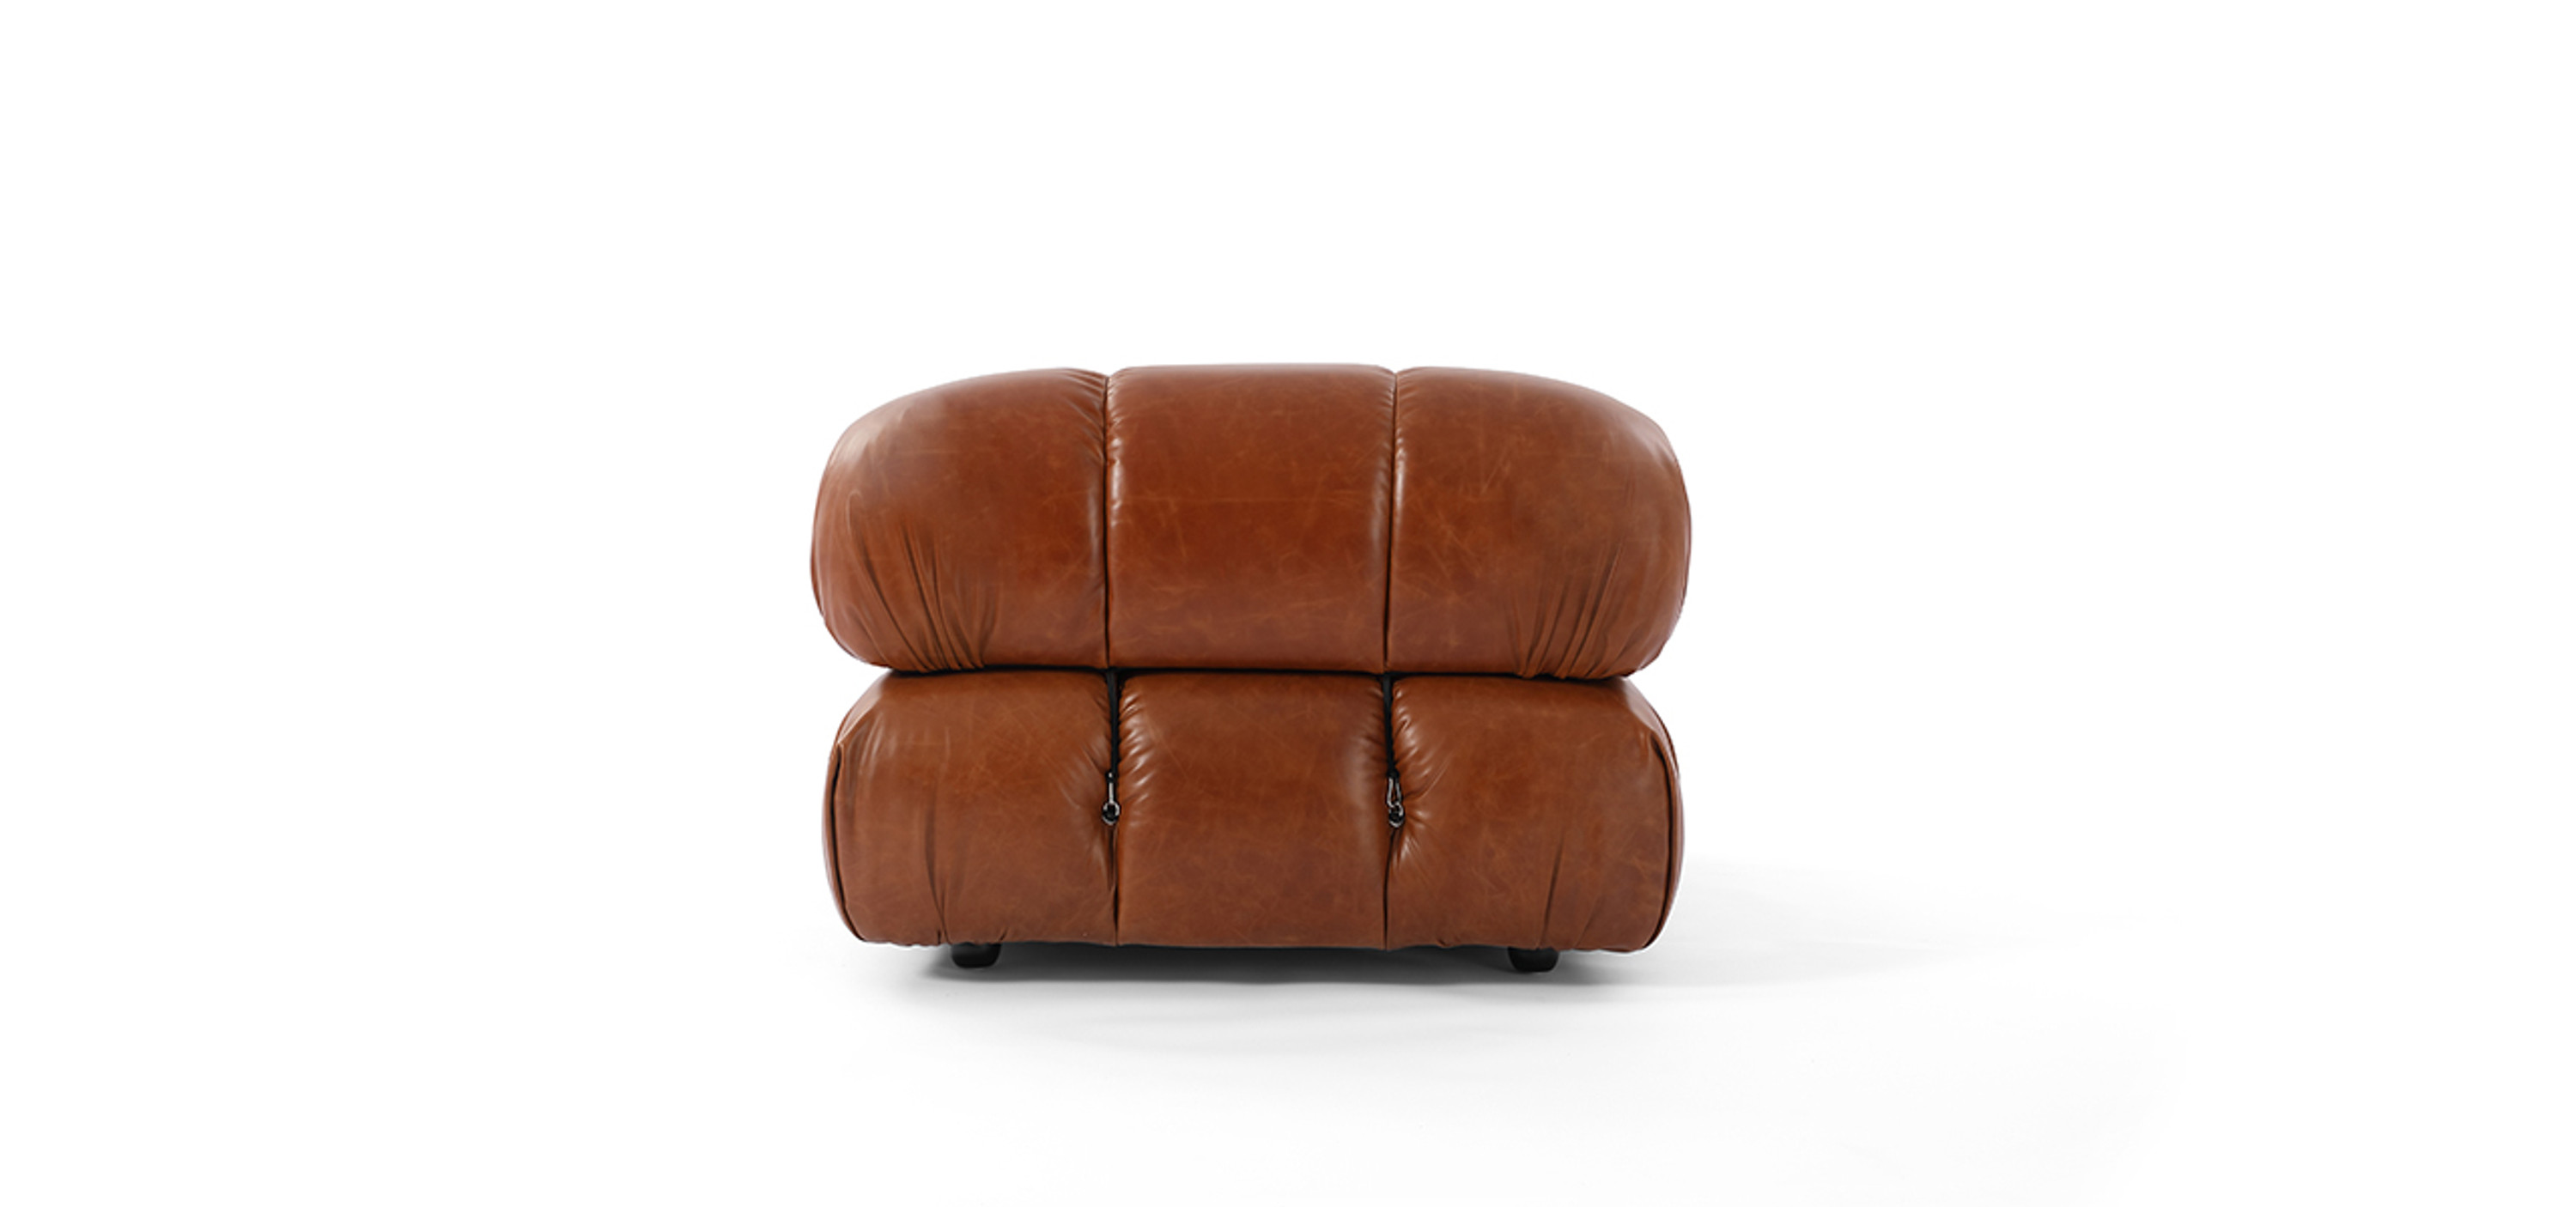 leather-antiquebrownleather